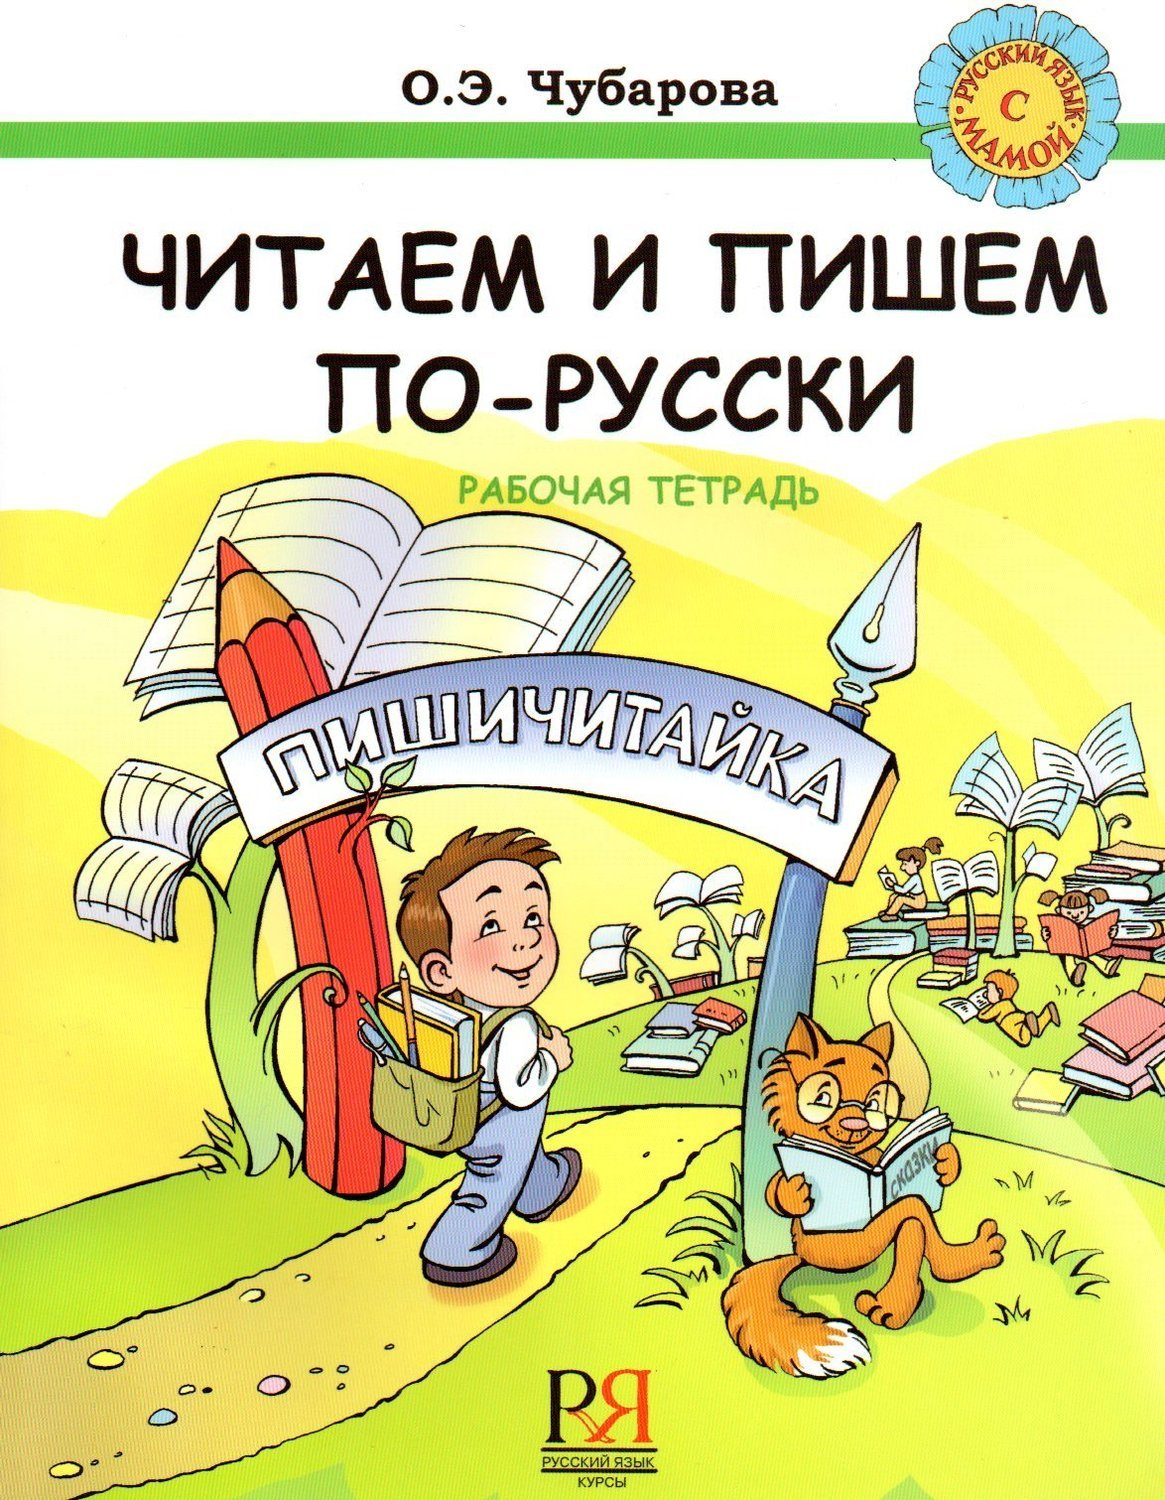 Chubarova, Olga. We read and write Russian. Workbook. Learn Russian with Mom Series ISBN 9785883371225